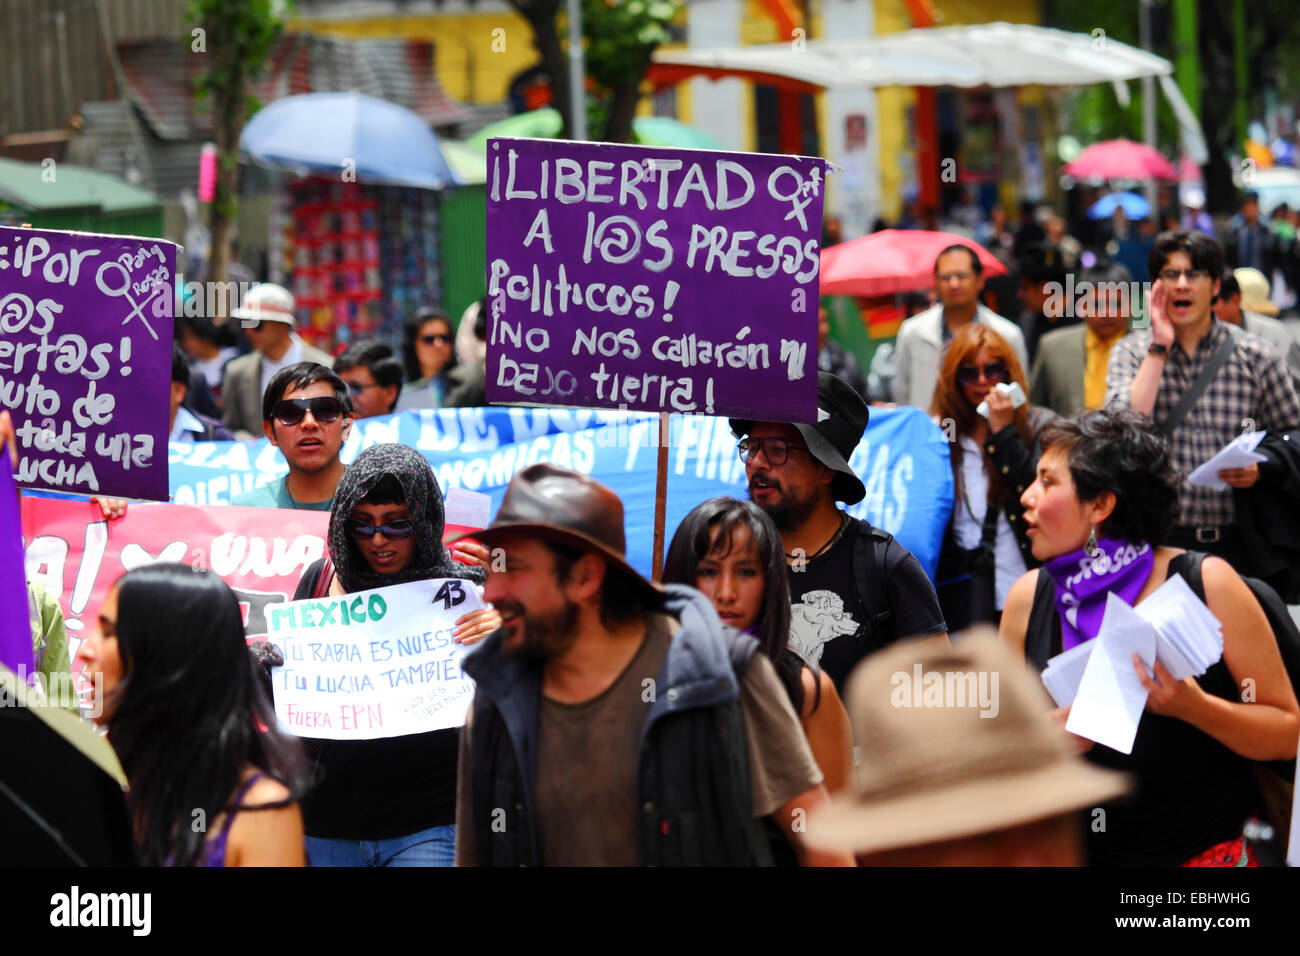 Protesters march to demand justice for the 43 missing students in Mexico and the release of political prisoners, La Paz, Bolivia Stock Photo